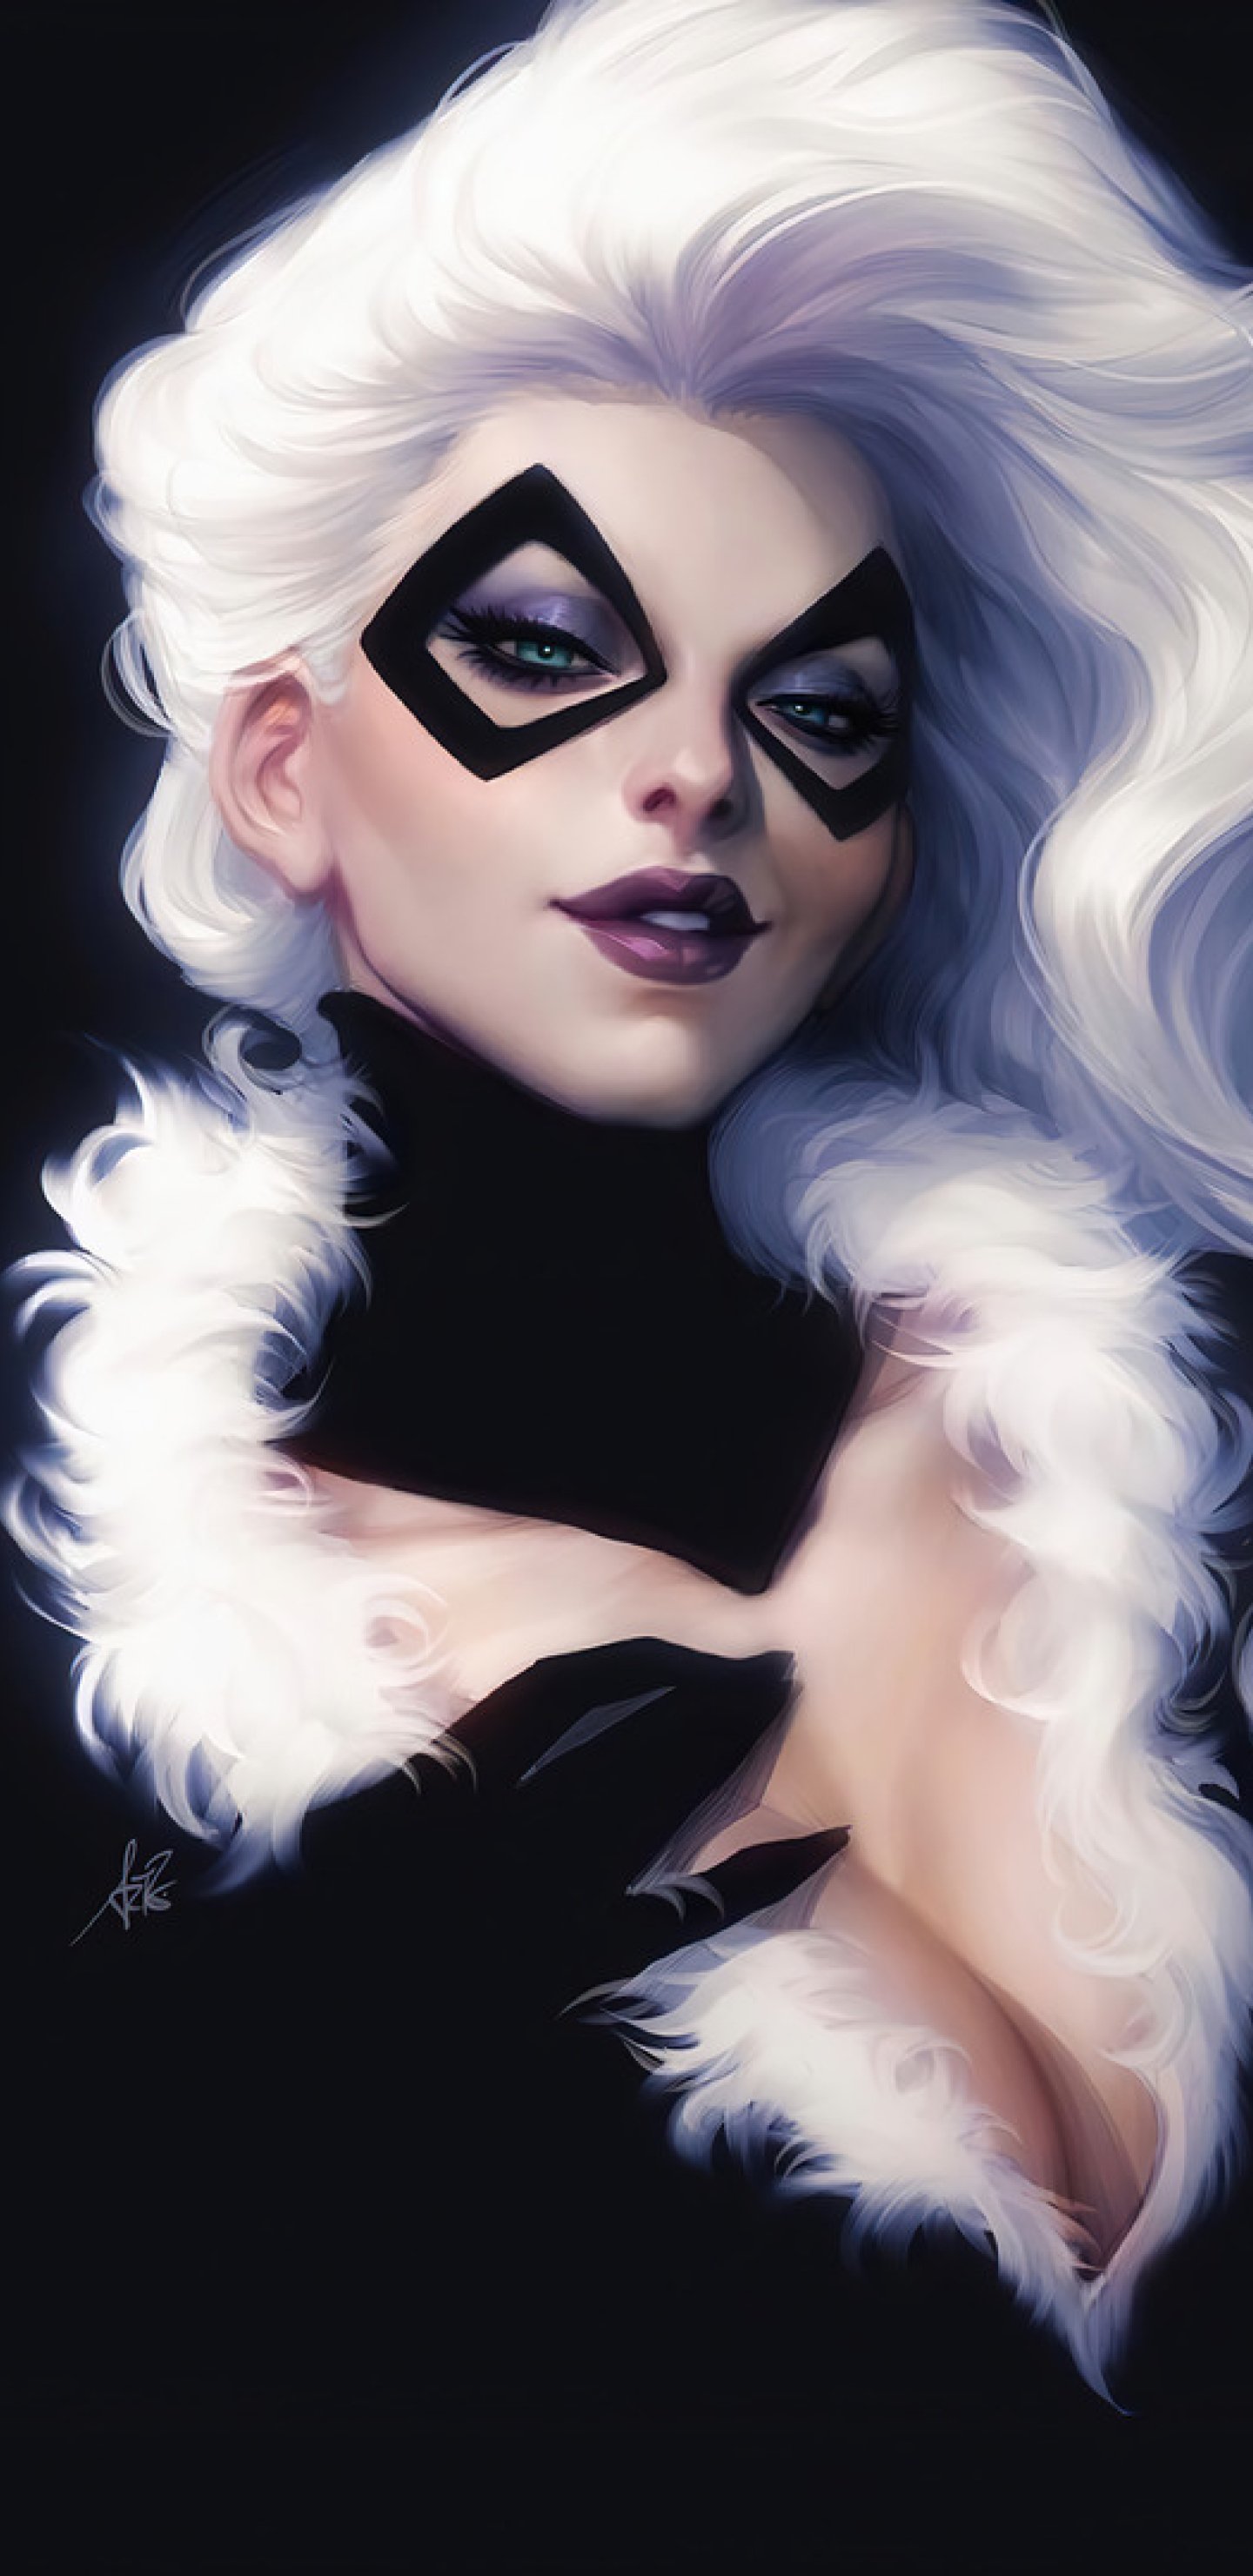 1440x2960 Black Cat Marvel Comic 2020 Samsung Galaxy Note 9 8 S9 S8 S8 Qhd Wallpaper Hd Superheroes 4k Wallpapers Images Photos And Background